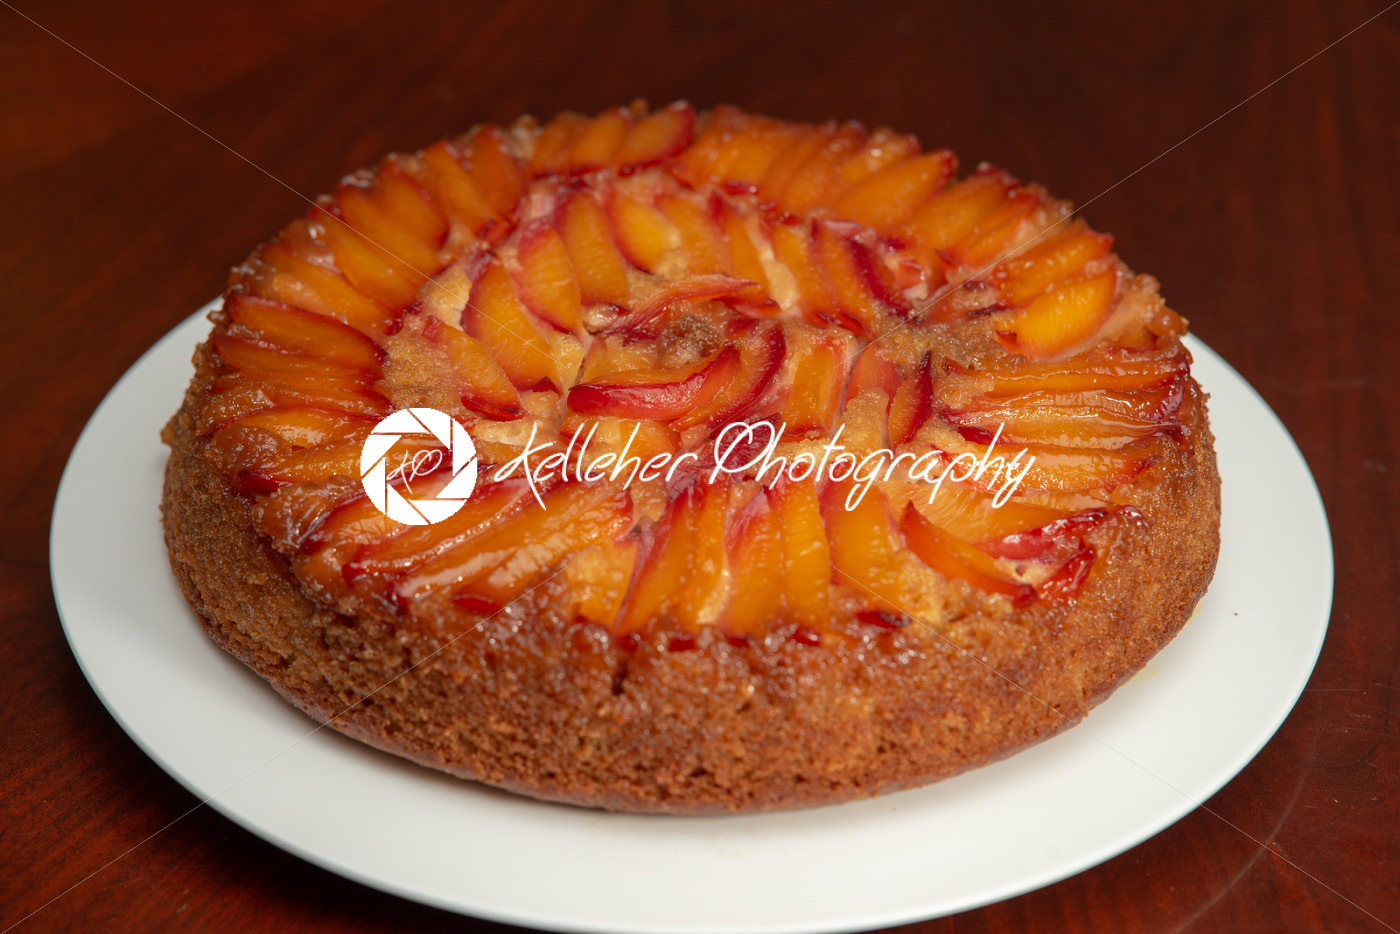 Cake with nectarines on white plate on top of dining table - Kelleher Photography Store